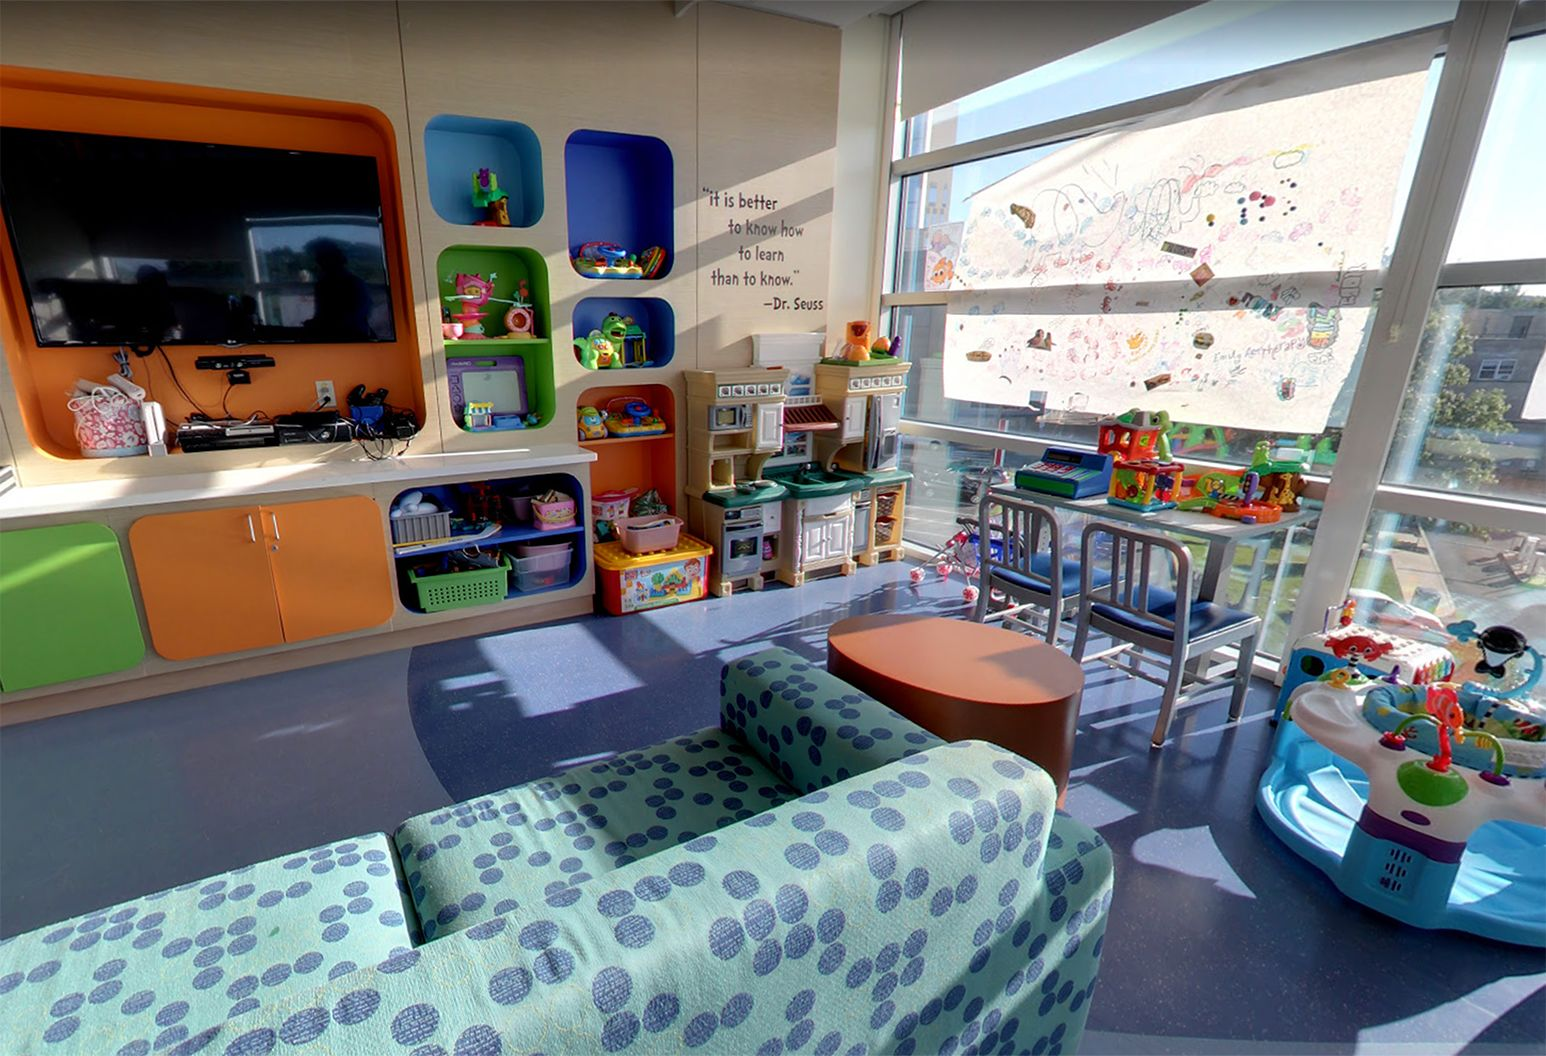 Our playroom features a cheerful orange, green and blue color scheme. It's filled with a big screen television, gaming consoles, toys and crafts. There is also large windows, a blue patterned couch and a table with chairs.